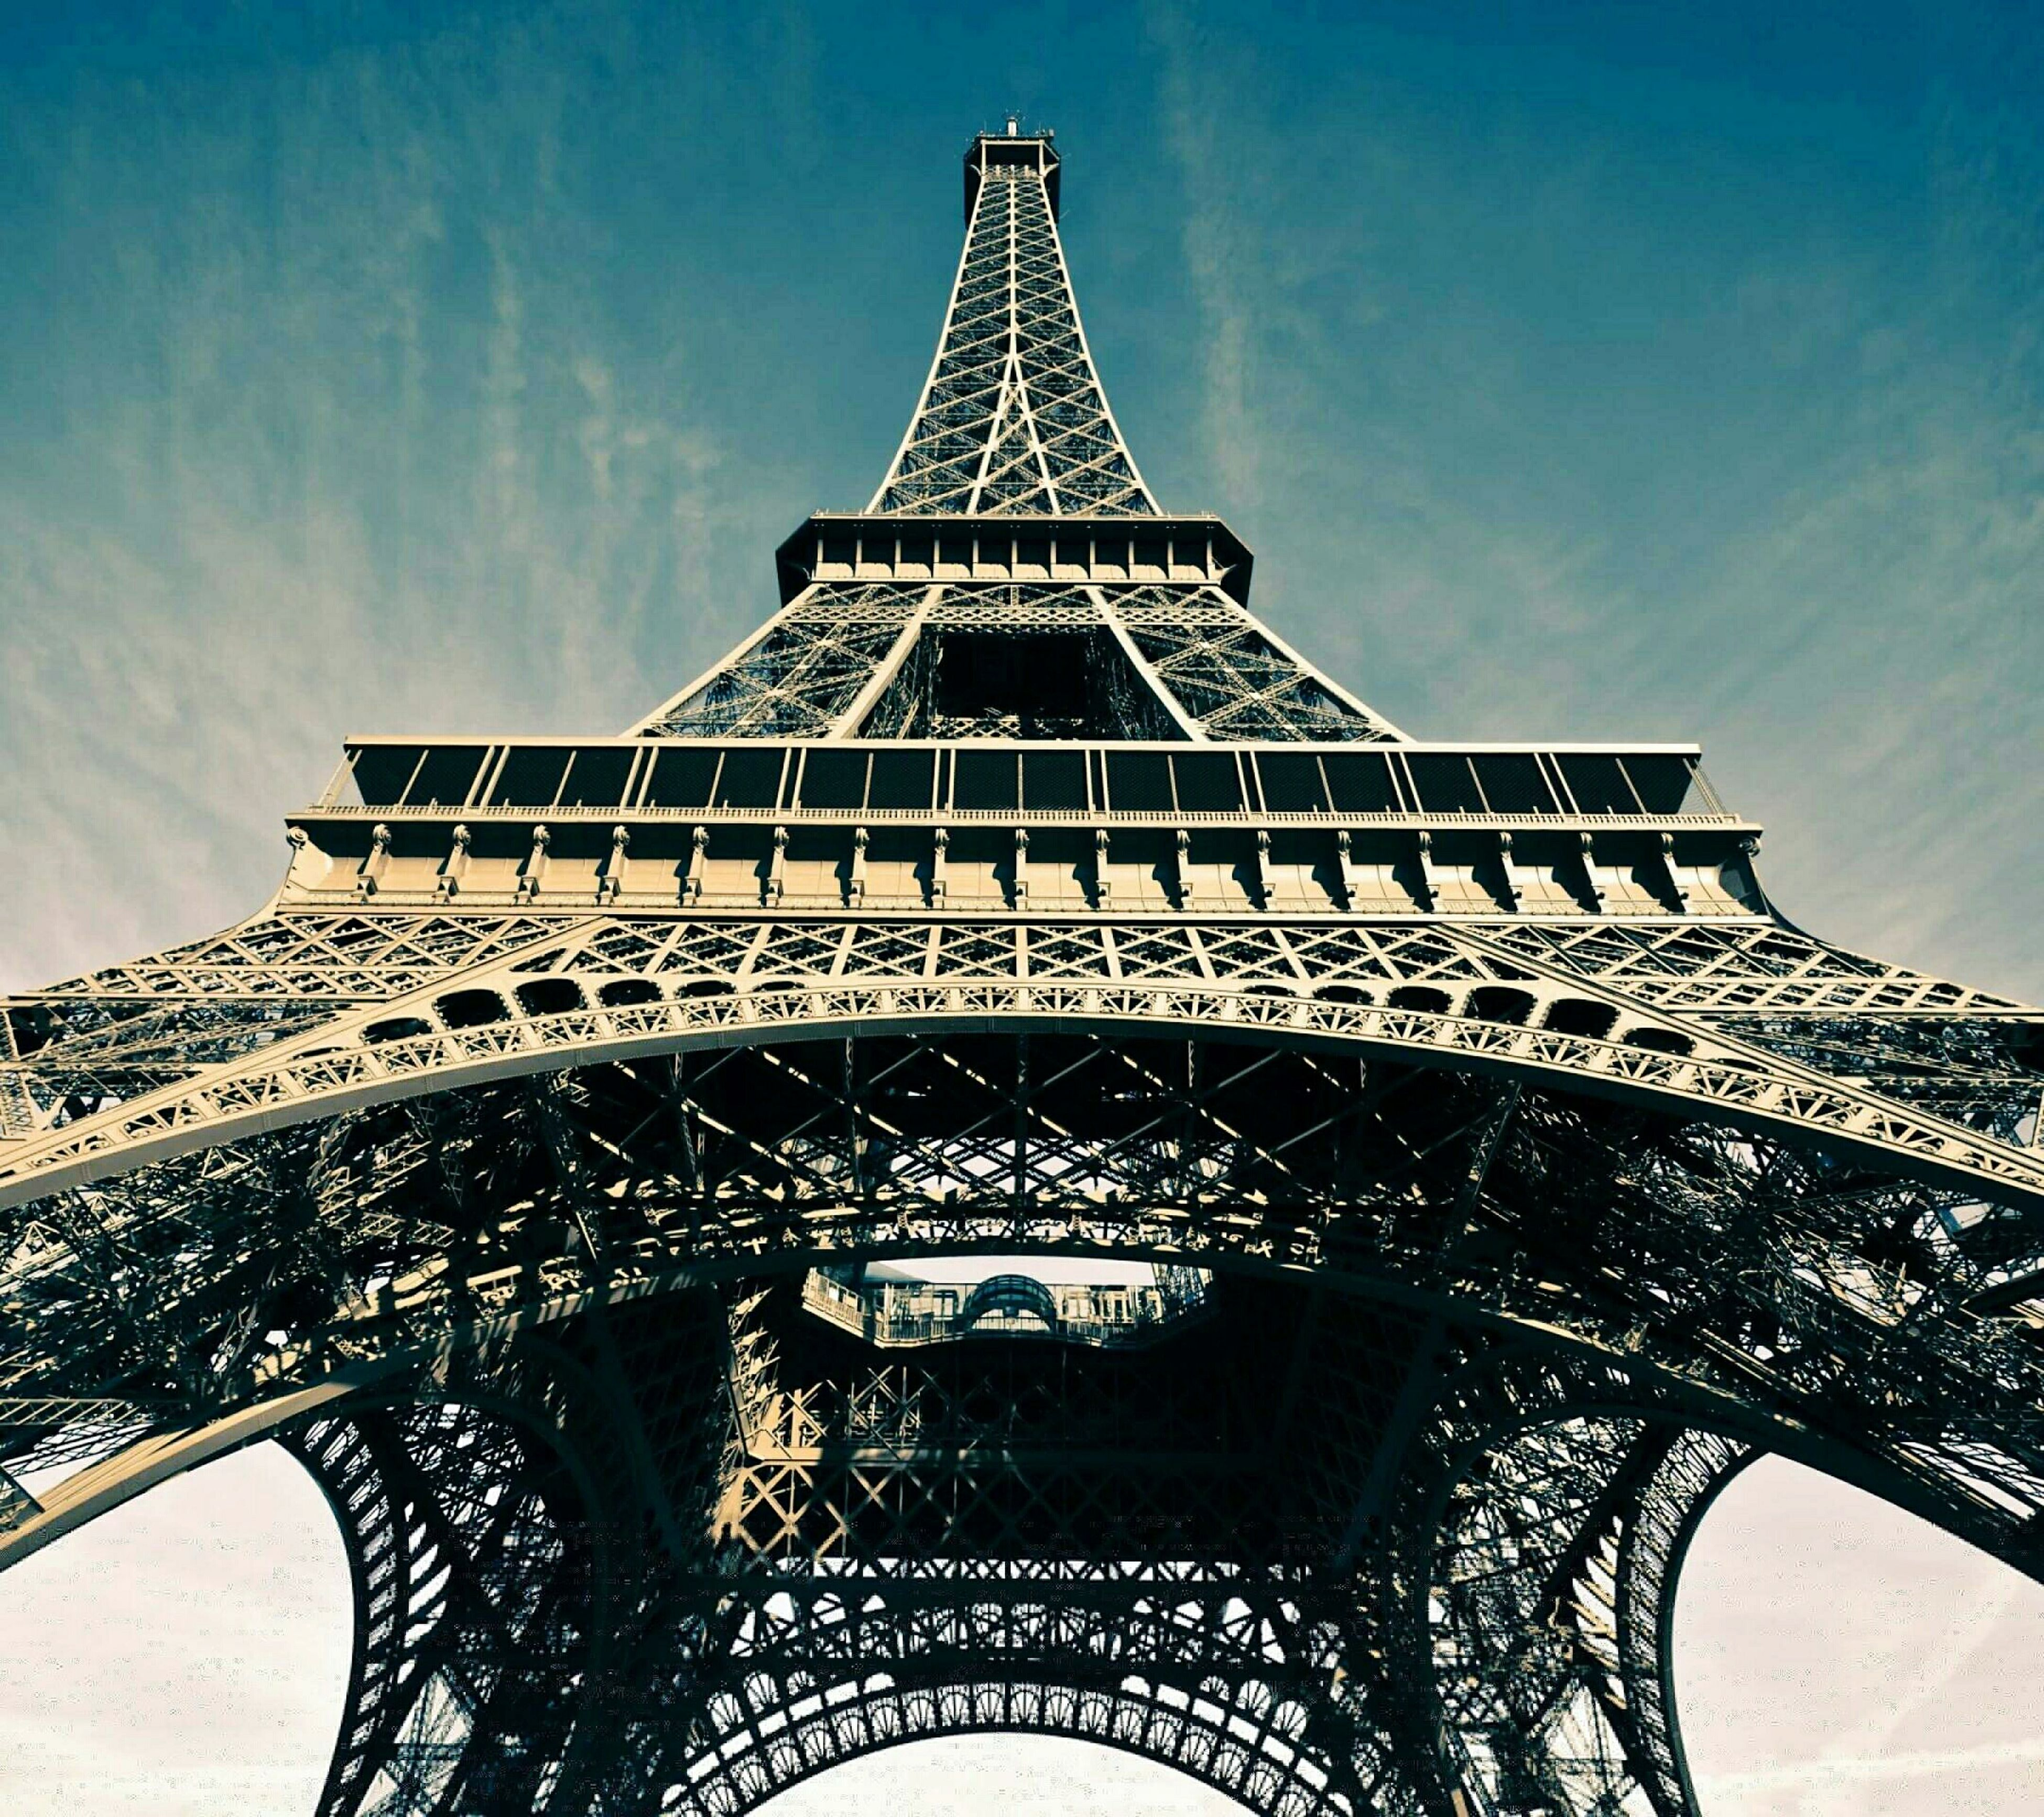 architecture, famous place, built structure, international landmark, low angle view, eiffel tower, travel destinations, tourism, culture, capital cities, travel, tower, architectural feature, history, sky, metal, tall - high, building exterior, day, city